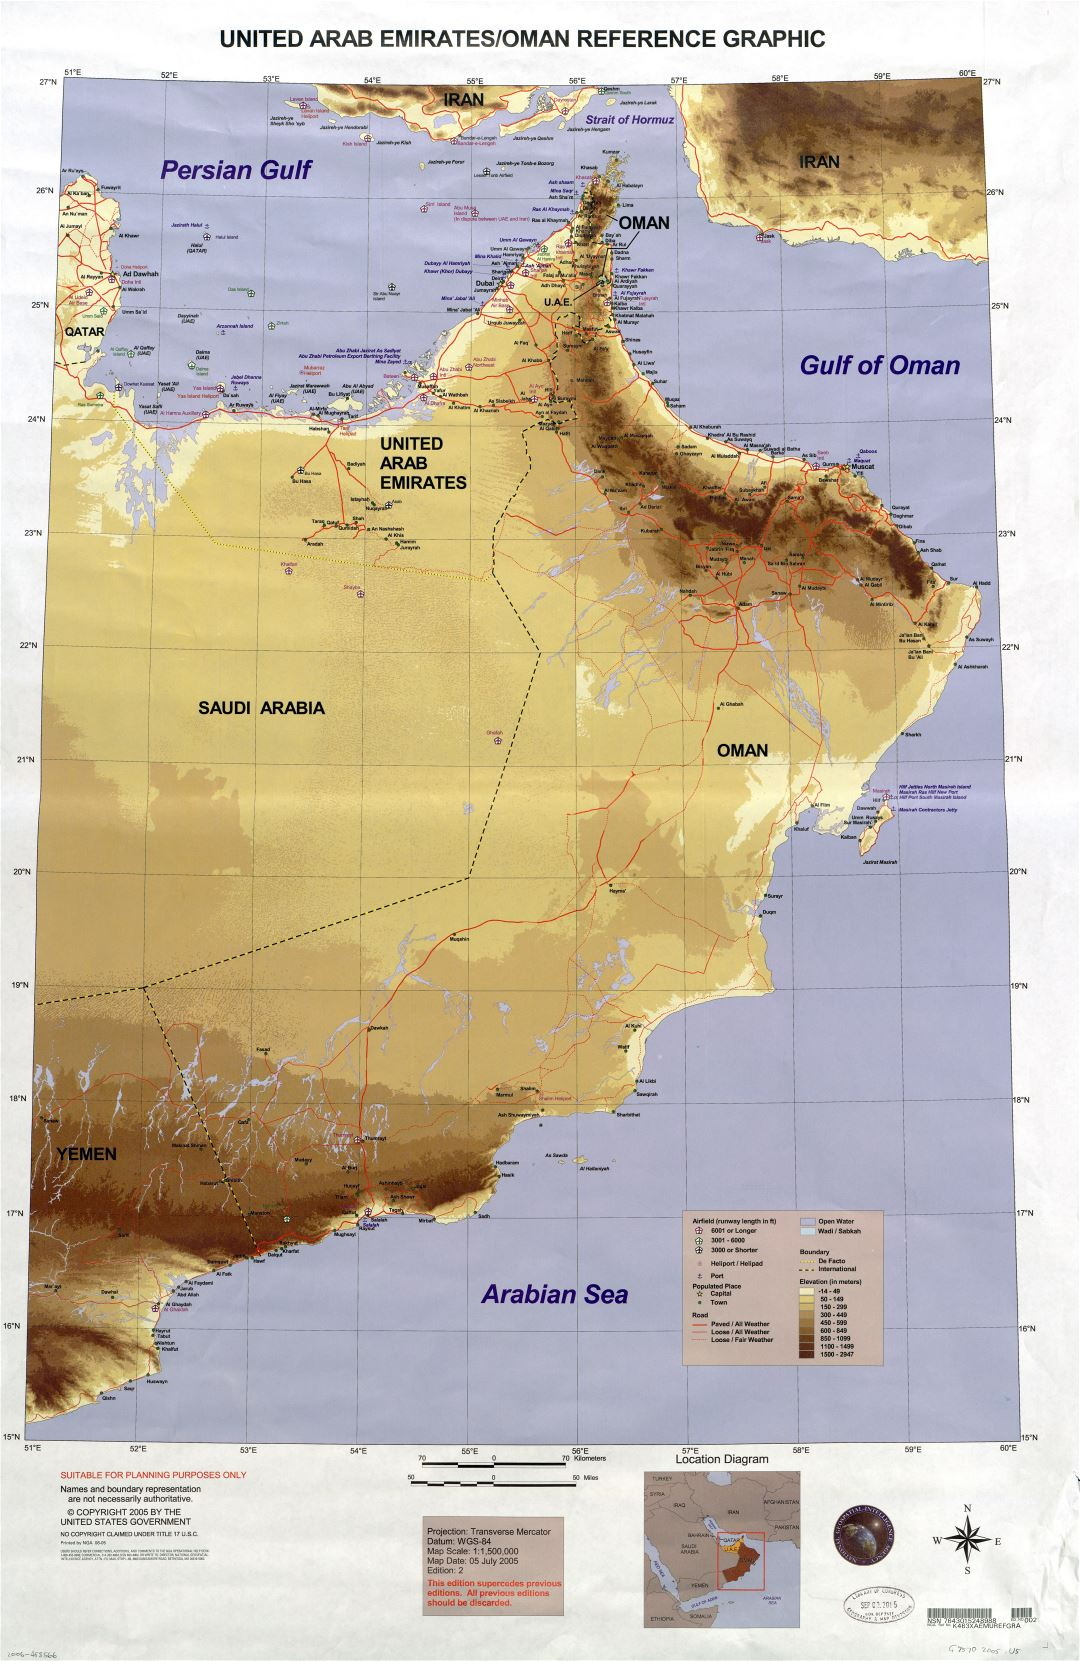 Large scale detailed United Arab Emirates and Oman reference graphic map - 2005